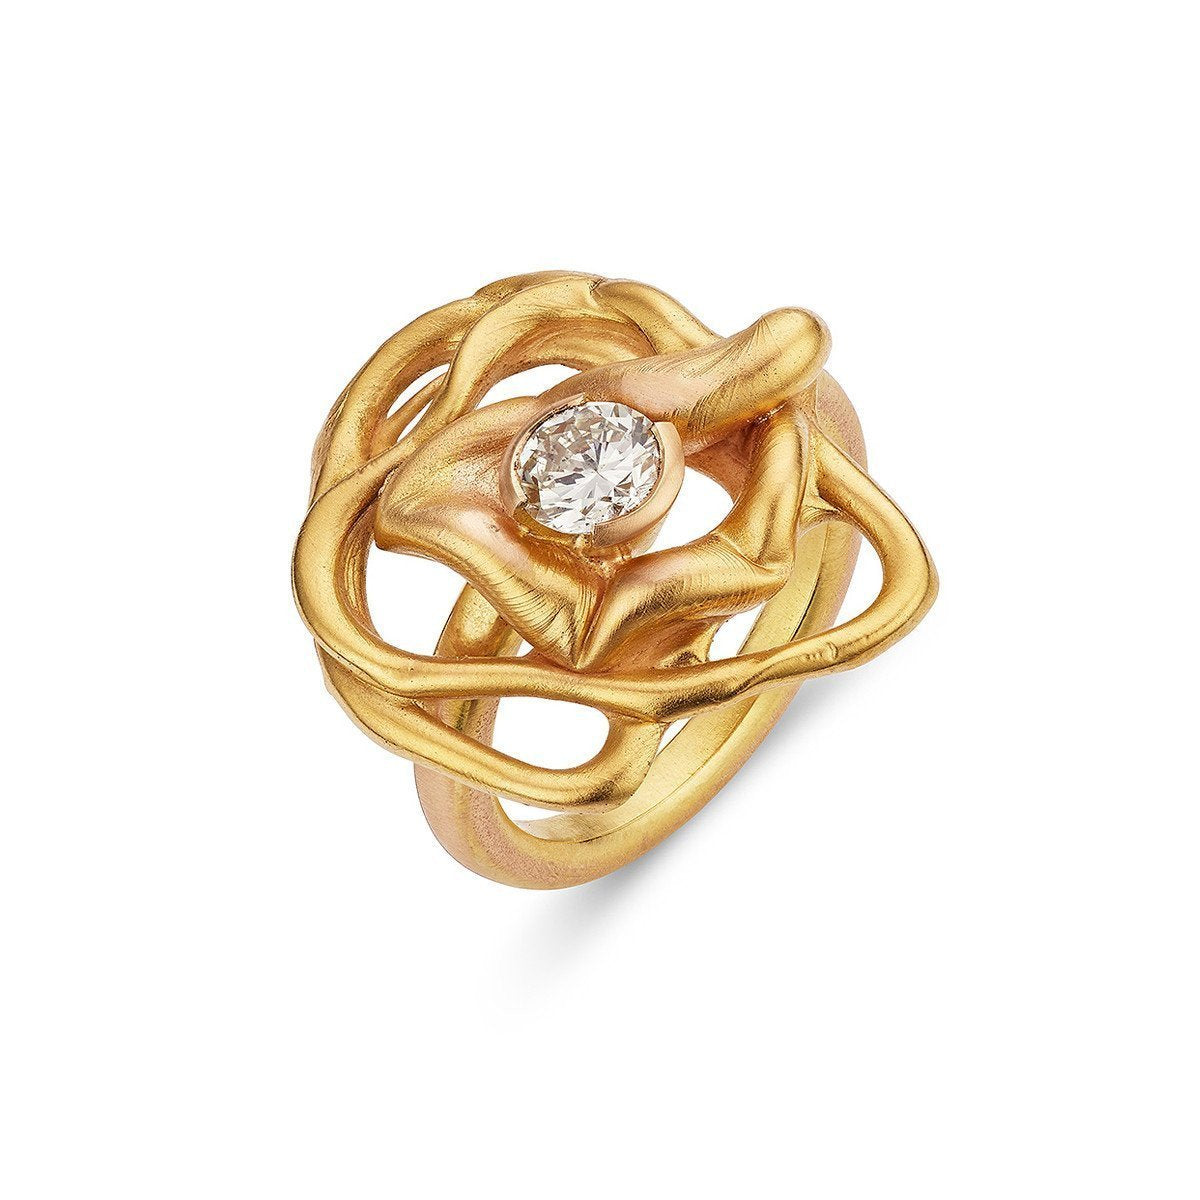 Game Ring-Rings-Karla Mertens-JewelStreet